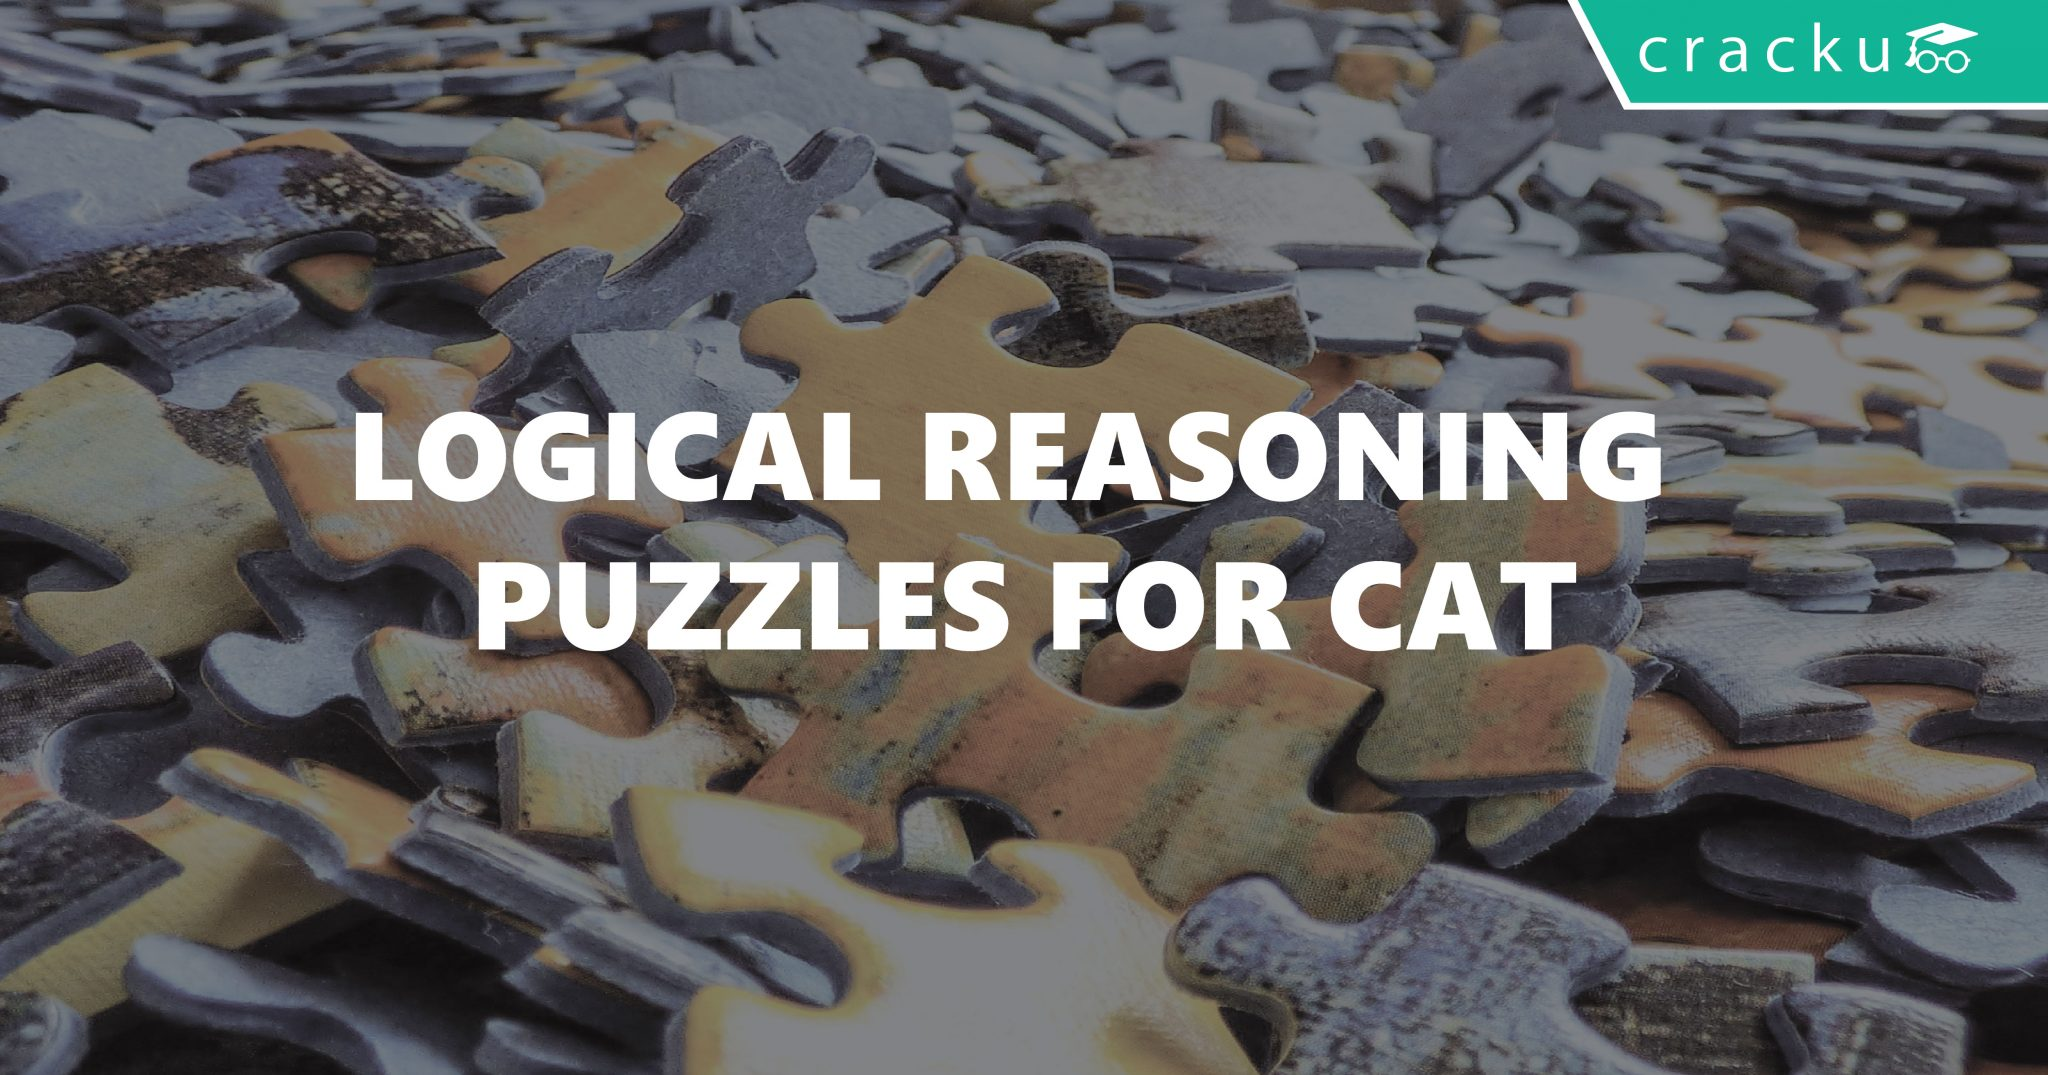 Logical Reasoning Puzzles for CAT - Cracku